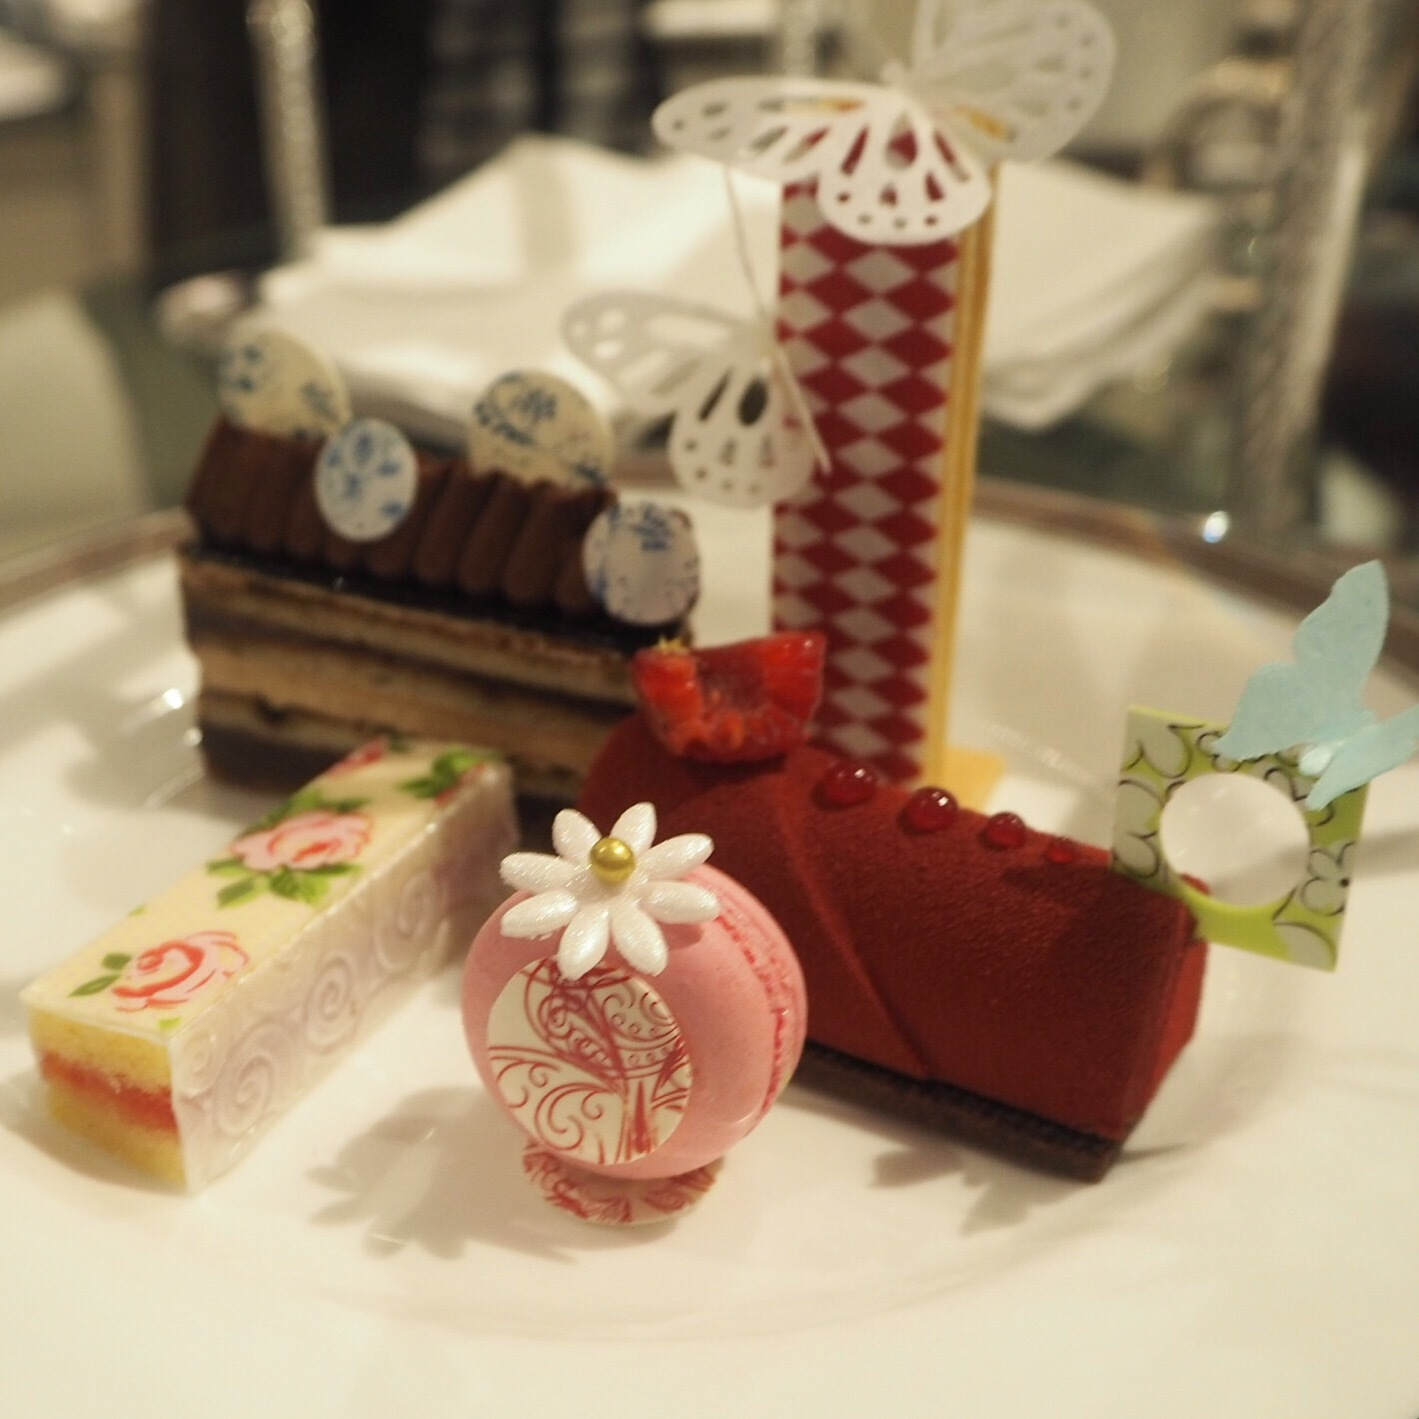 Langham Afternoon Tea with Wedgwood collection, created by Executive Pastry Chef, Cherish Finden